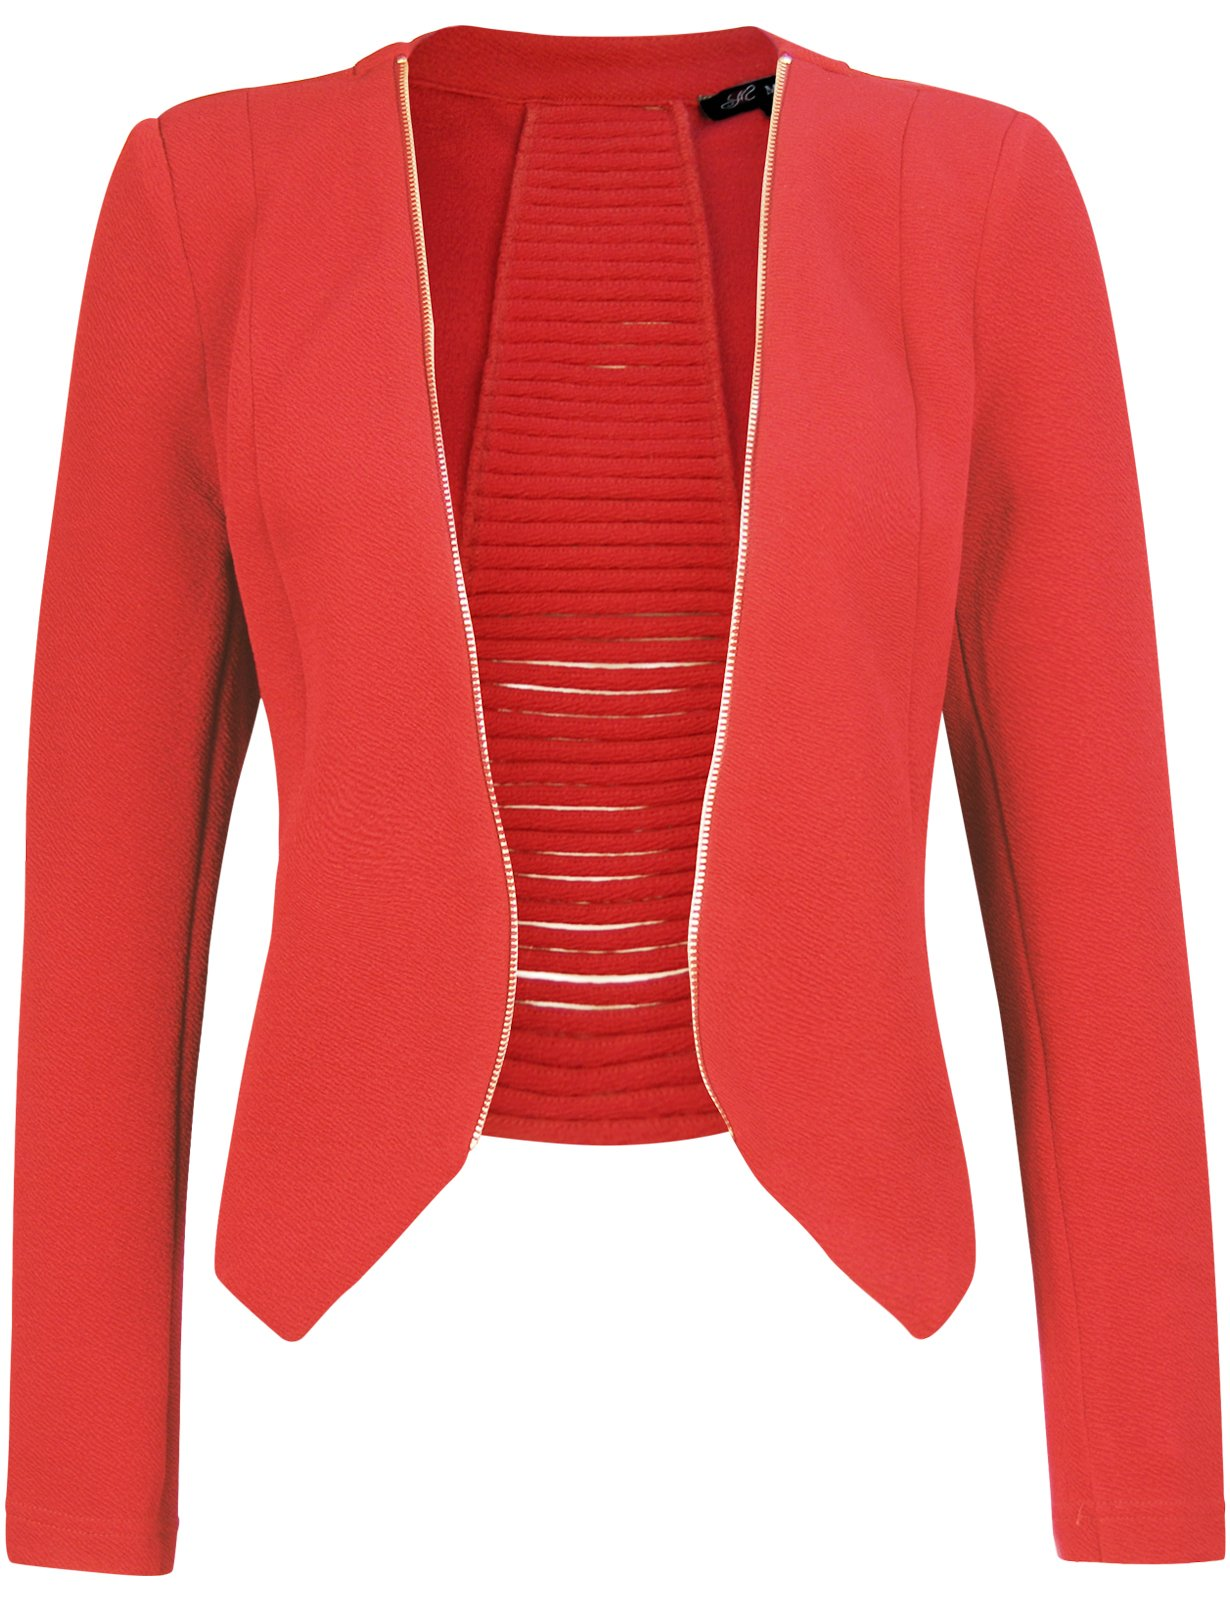 Blazers Blue Pink Ladies Blazer Jackets Work Wear 2019 Fashion Casual Long Sleeve Blasers Lady One Button Office Suit Outwear Female Refreshing And Beneficial To The Eyes Back To Search Resultswomen's Clothing